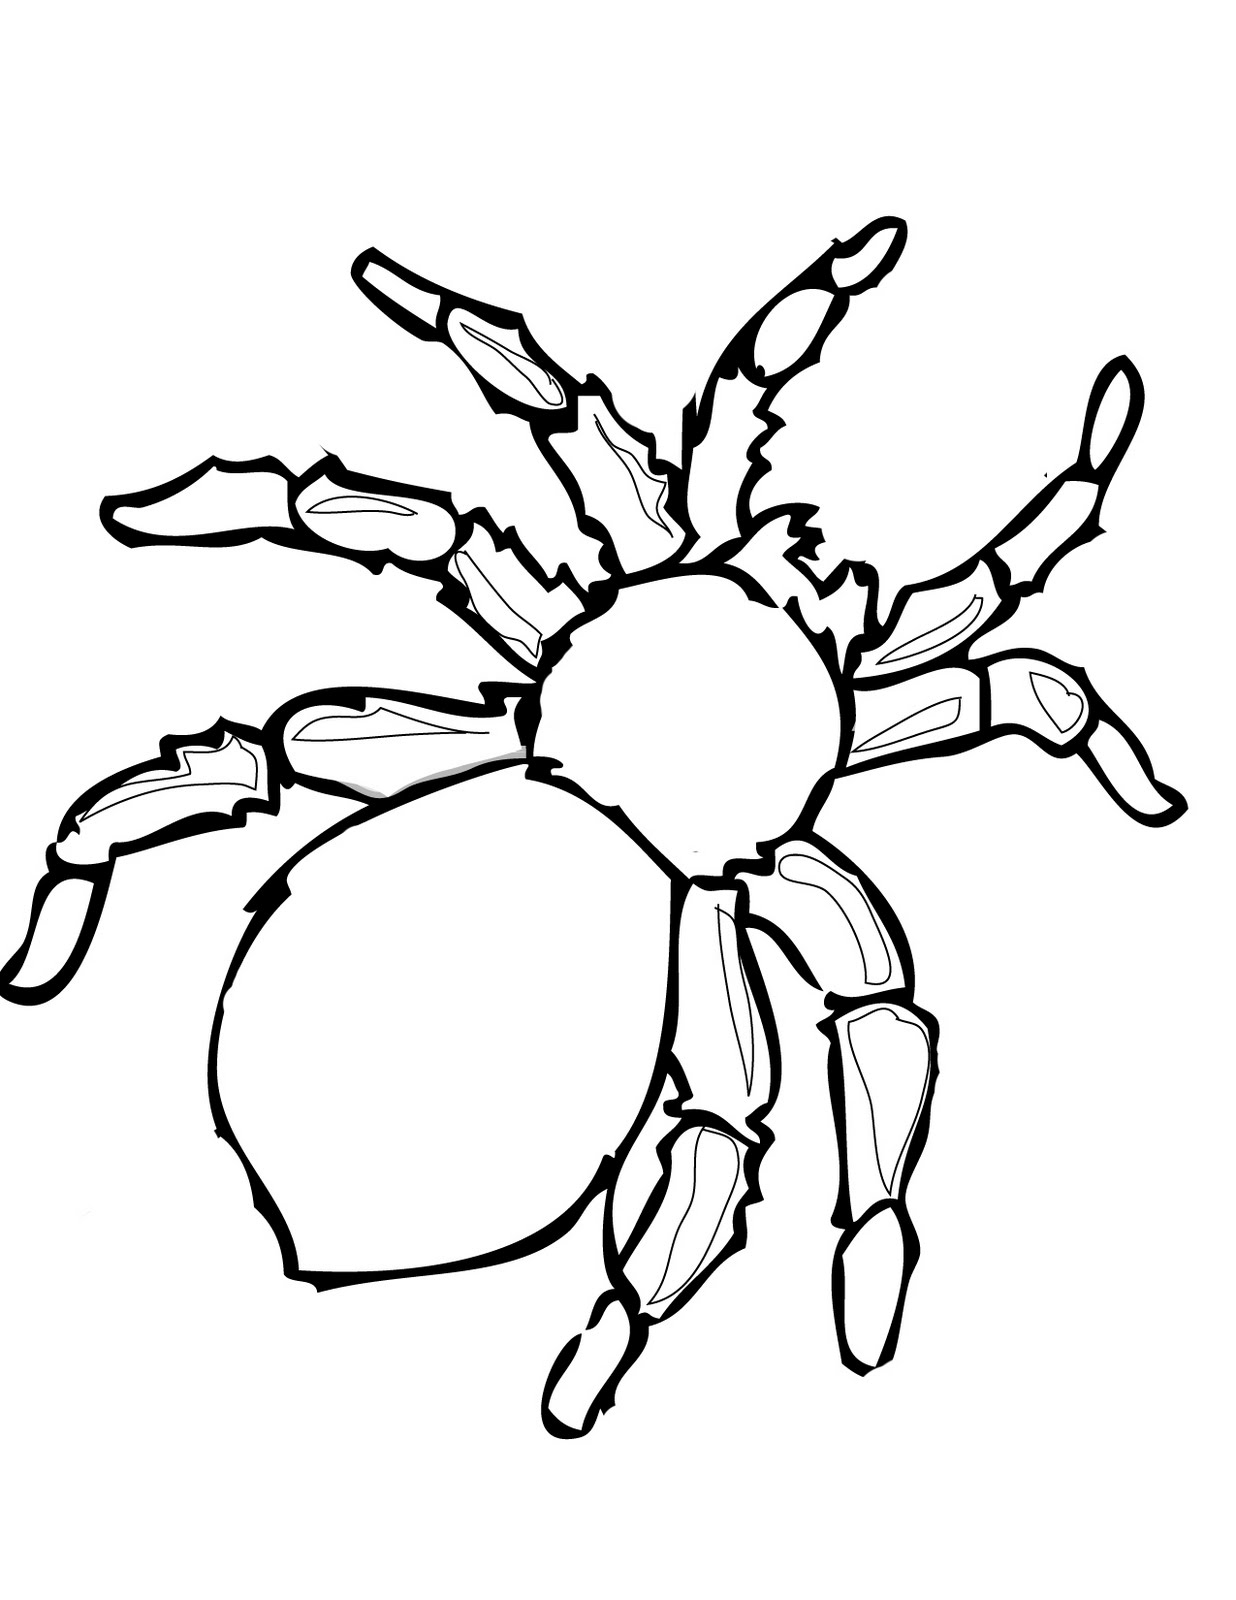 Free Printable Spider Coloring Pages For Kids Coloring Page Spider